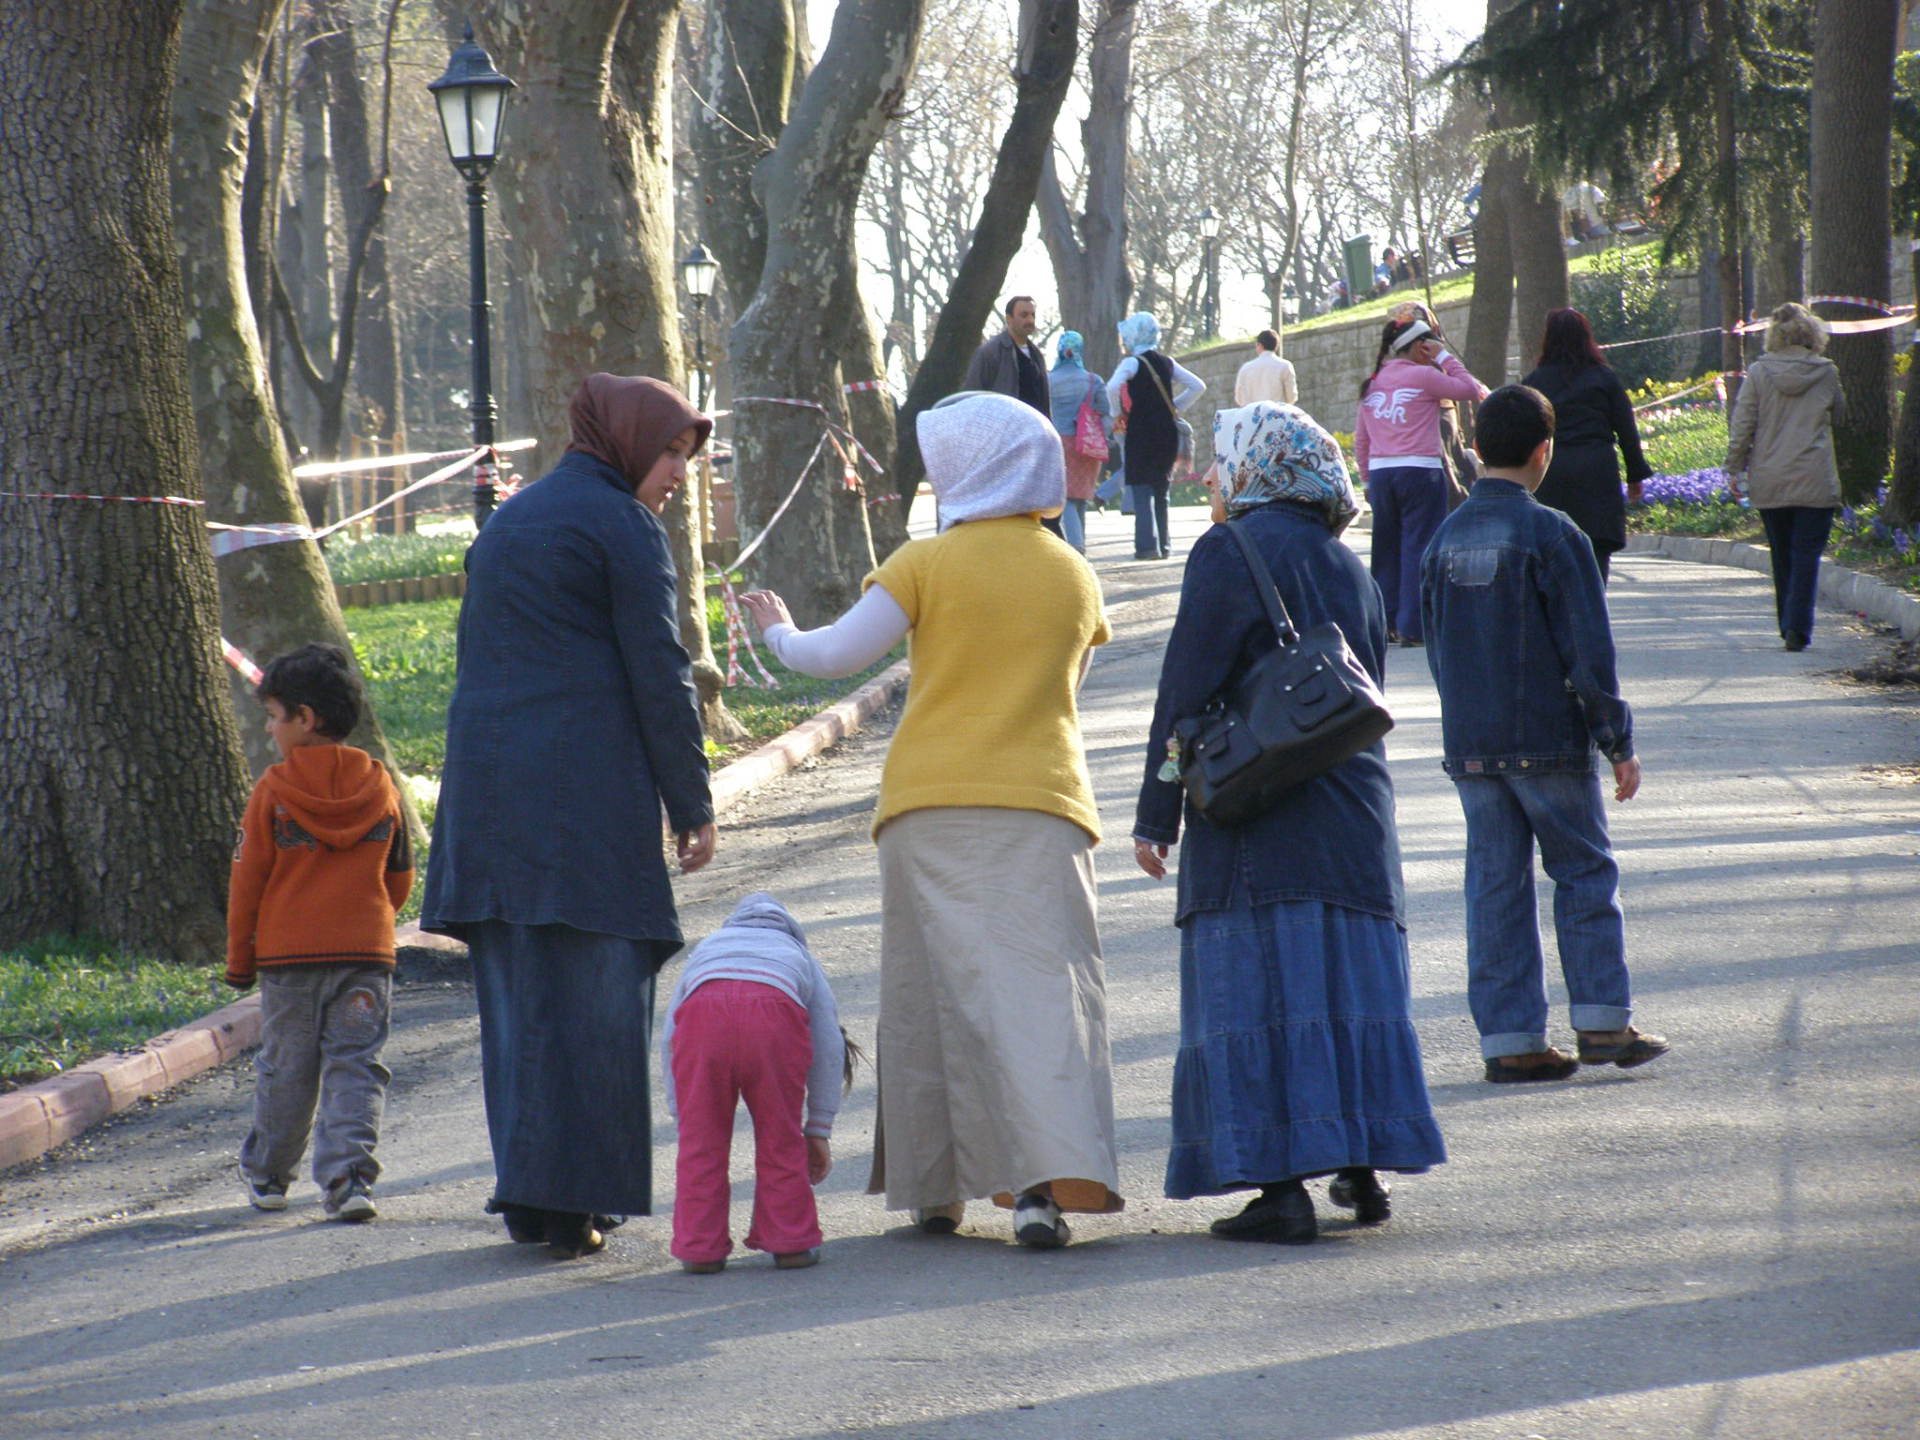 Half of Istanbul gets out to walk in parks during Istanbul's Tulip Festival. Istanbul, Turkey: chapter 64, You must only to love them. http://mershon.wordpress.com